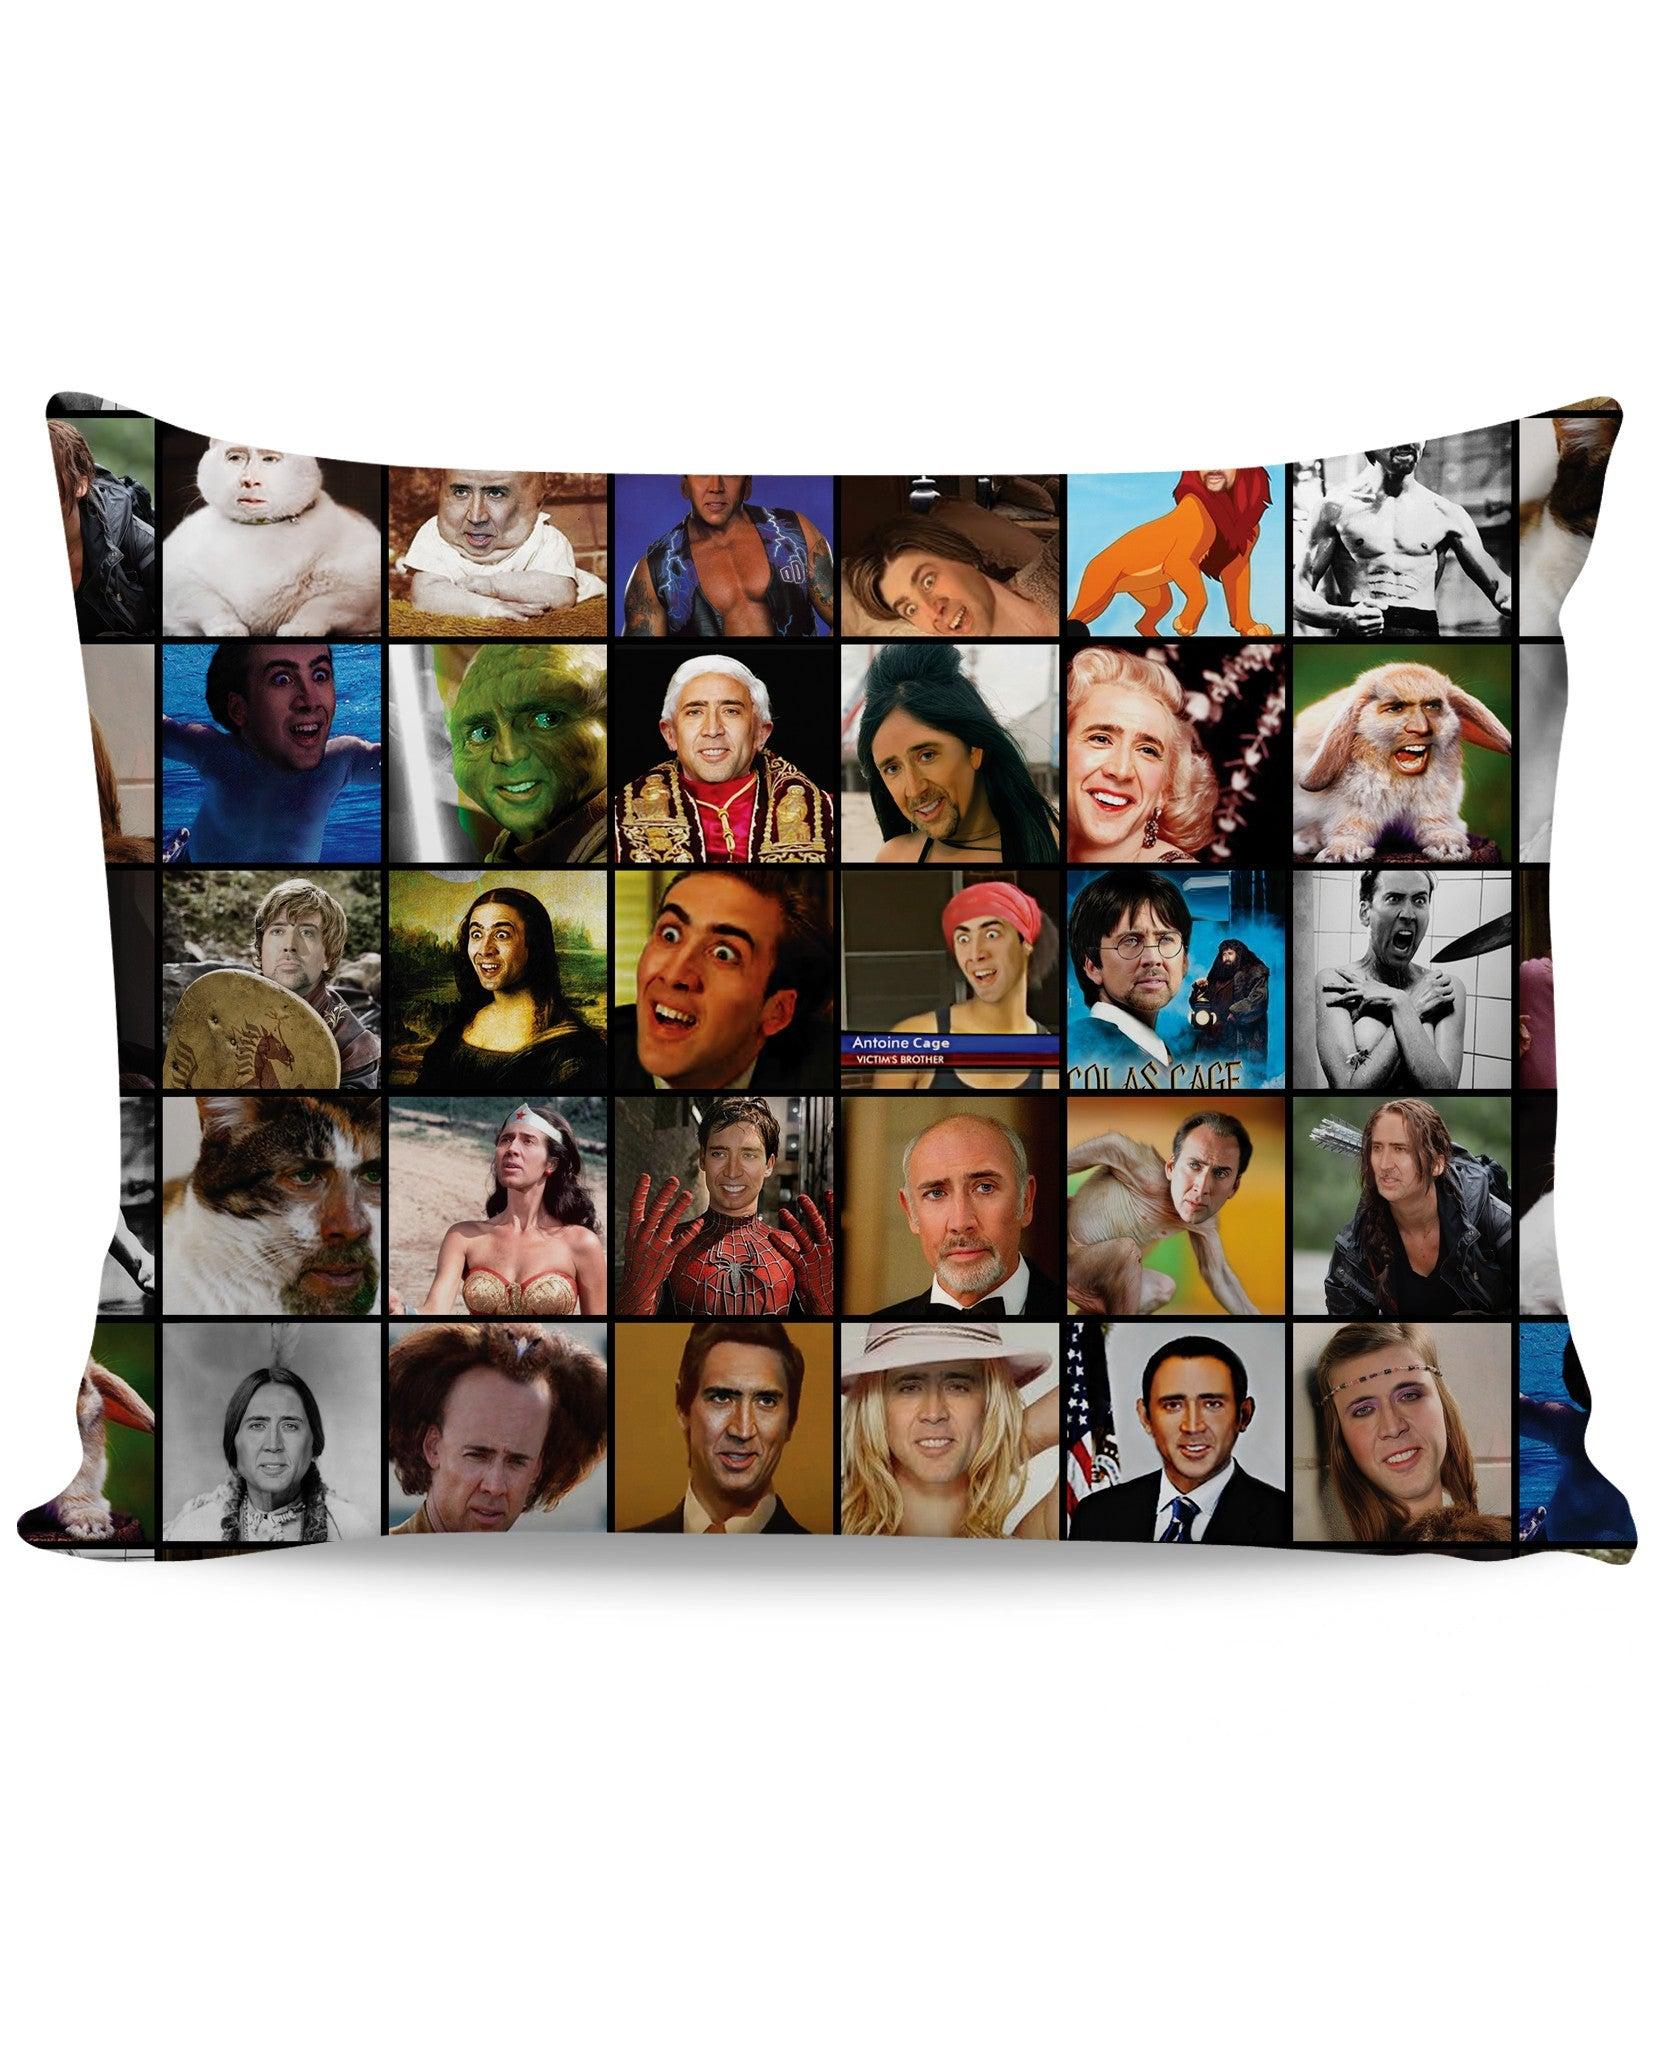 Nicolas Cage Rage Faces Pillow Case